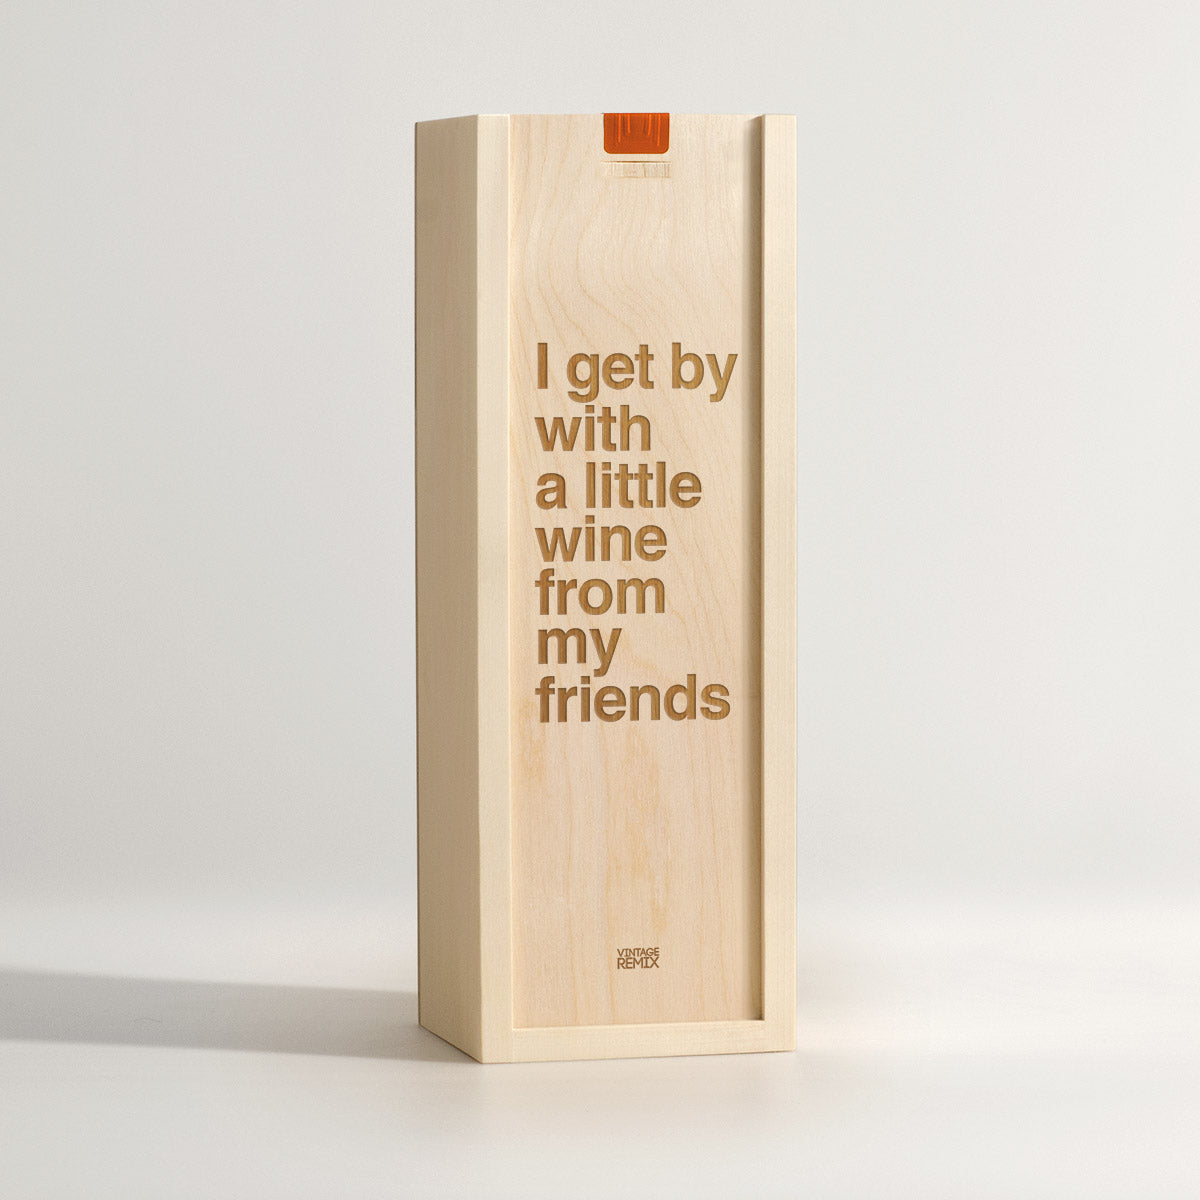 Get By With - Song Lyrics Wine Box